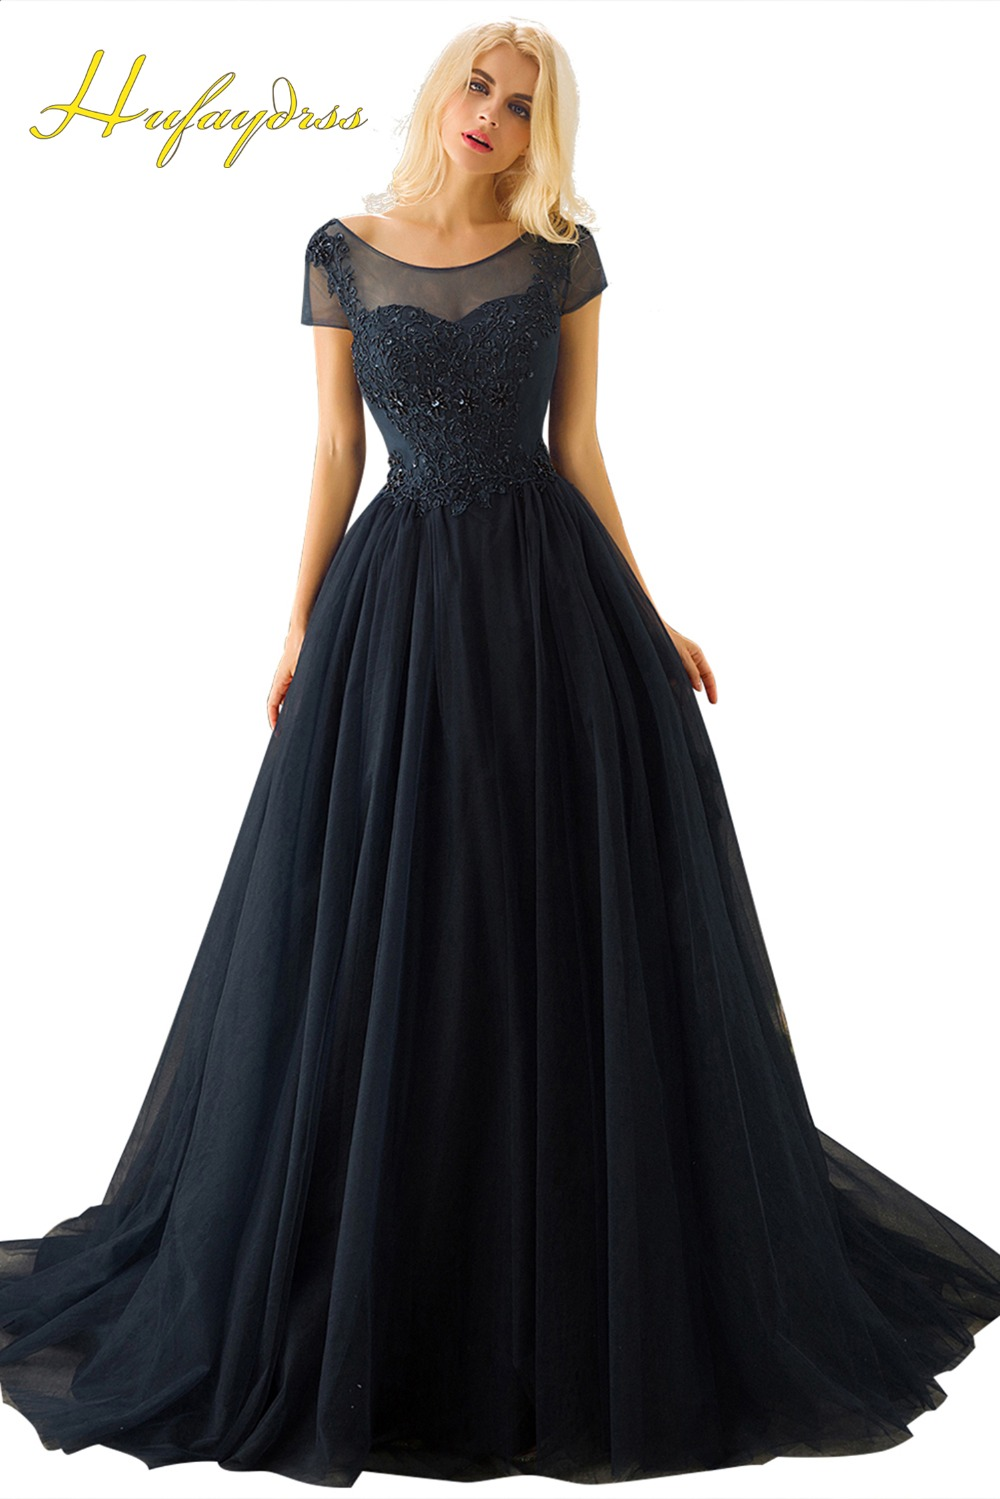 Finsbury park bridesmaid dresses gallery braidsmaid dress stunning evening gown shops london photos wedding dresses for in navy blue lace evening dresses for ombrellifo Image collections